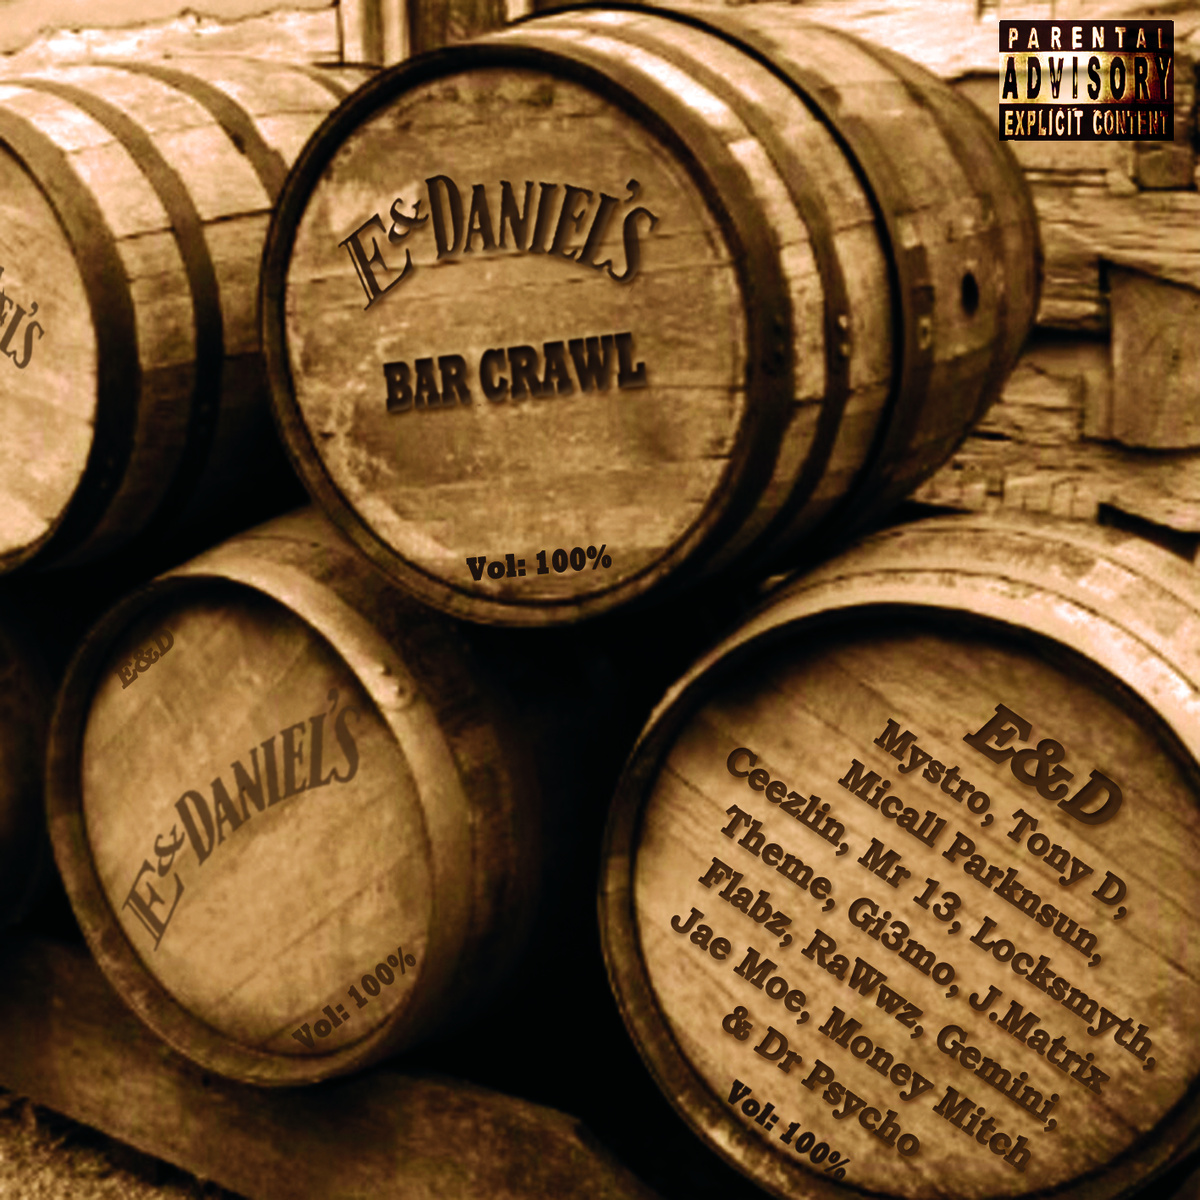 E And Daniel's – Bar Crawl E.P.